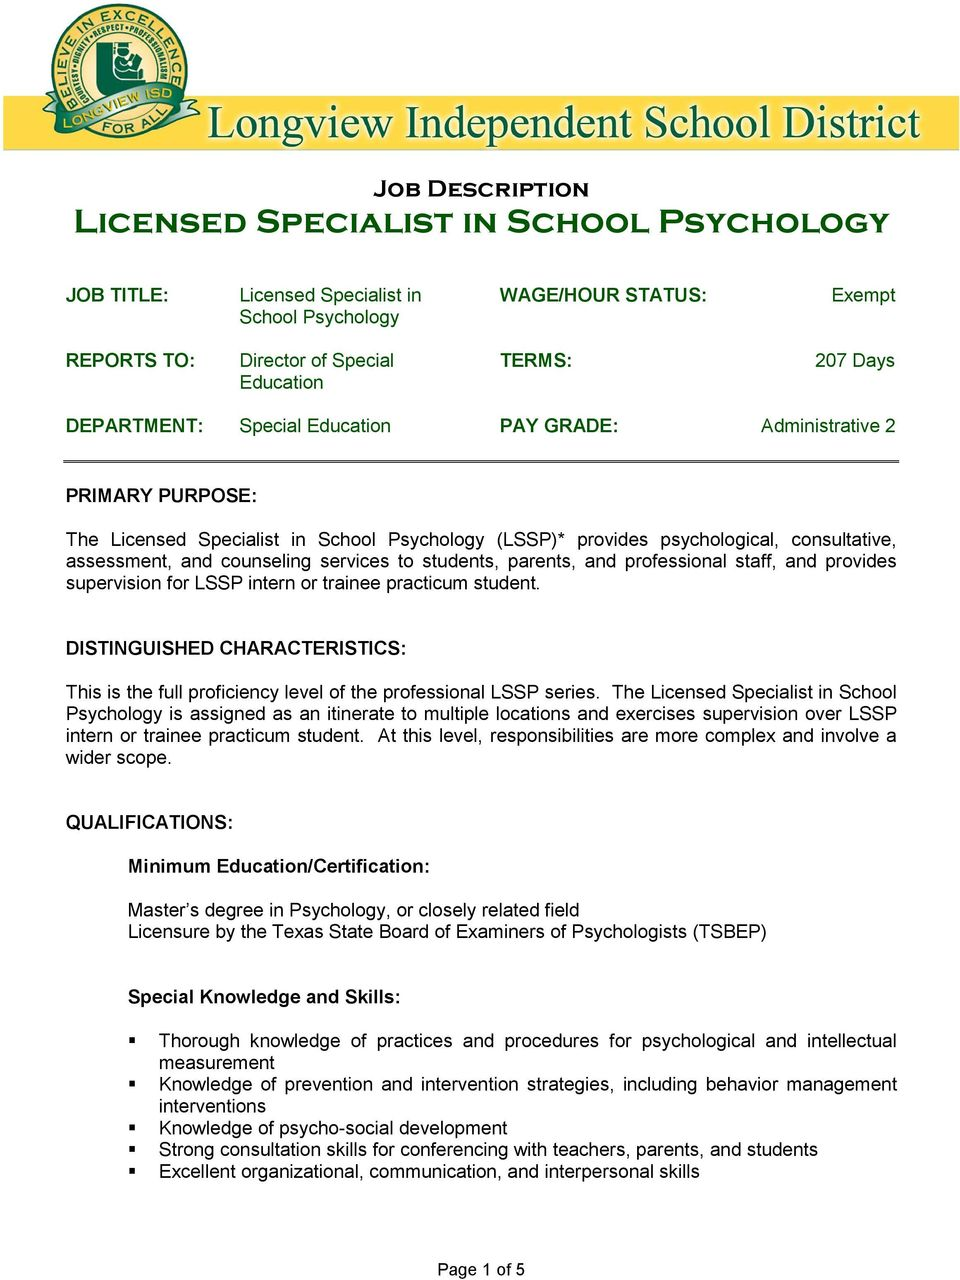 trainee practicum student. DISTINGUISHED CHARACTERISTICS: This is the full proficiency level of the professional LSSP series.